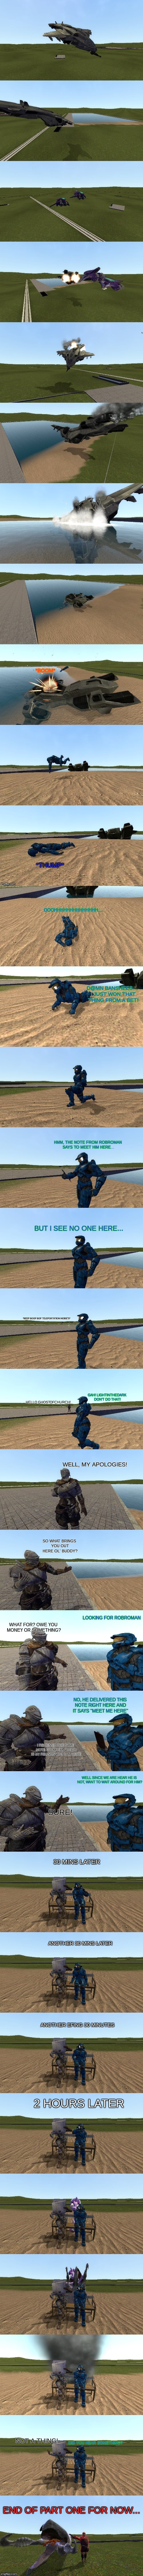 A comic for two certain Imgflippers Pt.1 | *BOOM* DID YOU HEAR SOMETHING? *THUMP* OOOHHHHHHHHHHHHHH.... D@MN BANSHEES.... I JUST WON THAT THING FROM A BET! HMM, THE NOTE FROM ROBROMAN | image tagged in comic,gmod,ghostofchurch,lightinthedark,graboid,creepy starlight glimmer | made w/ Imgflip meme maker